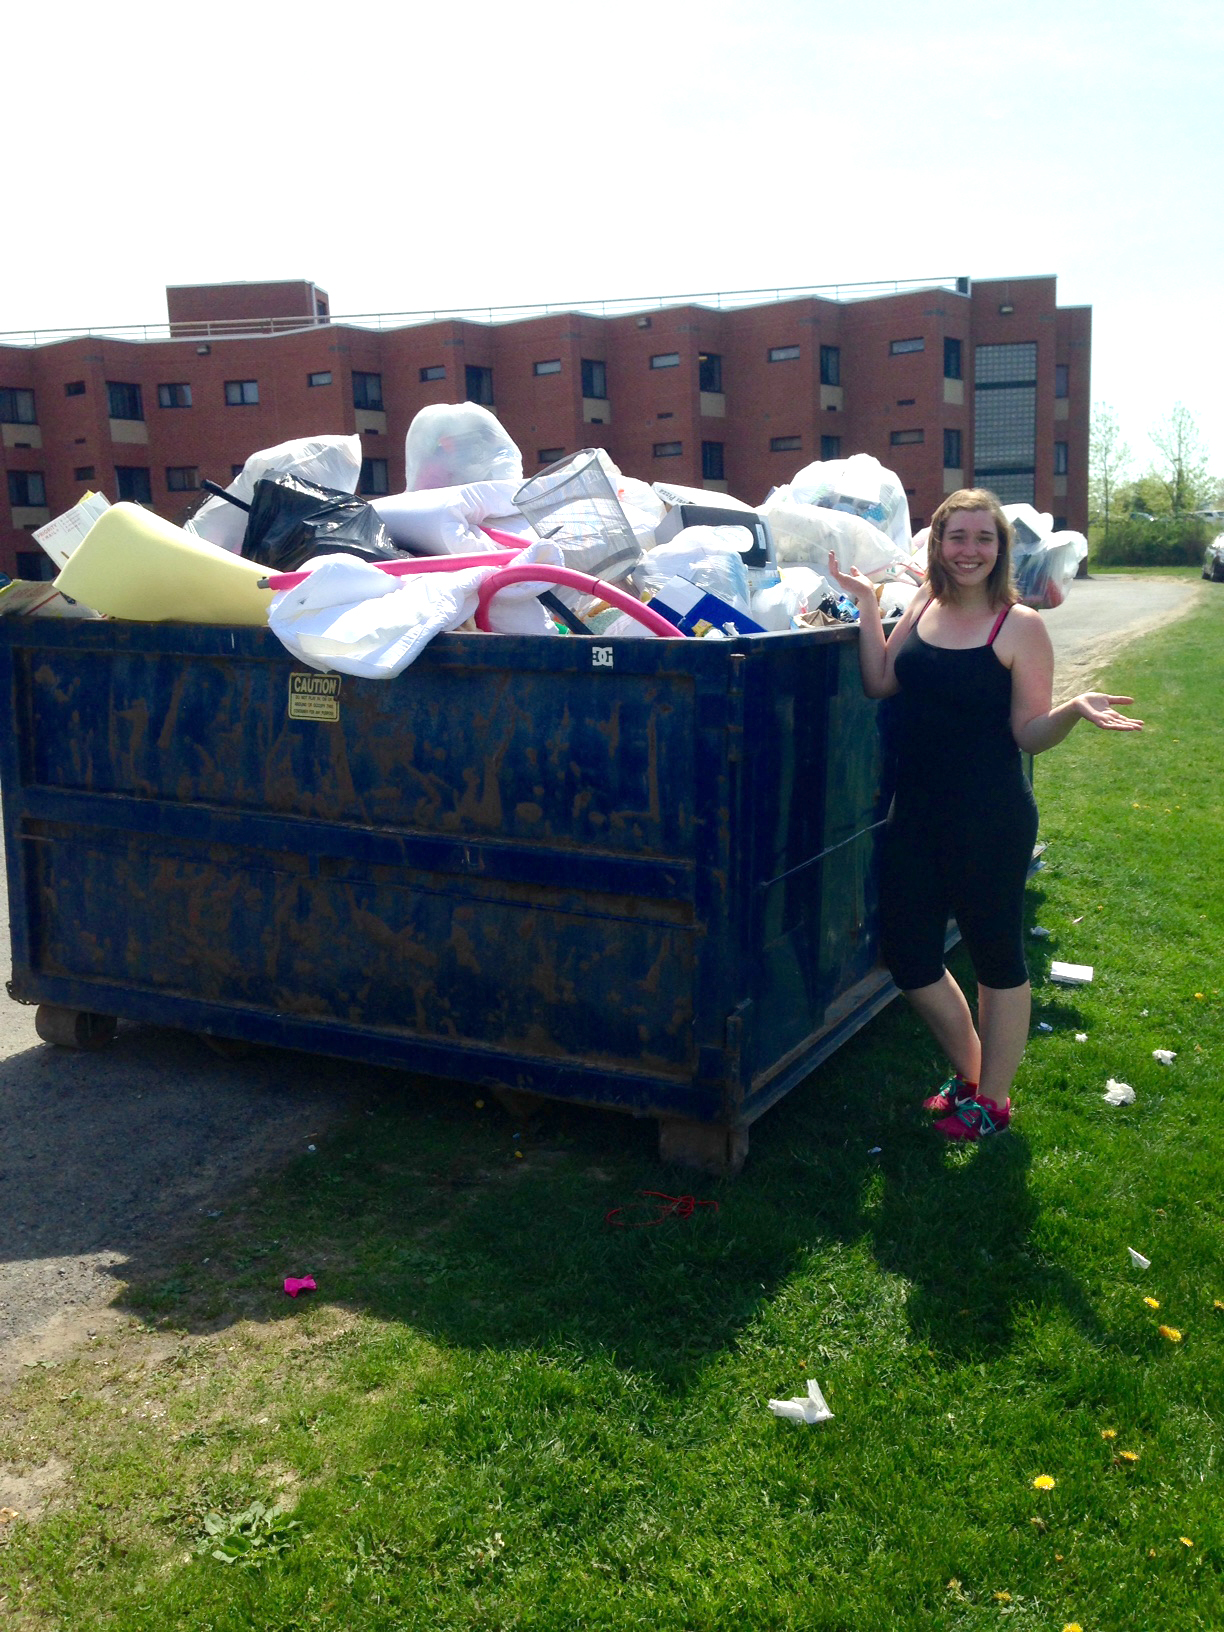 dumpster diving or how i learned to stop buying and love the dumpster diving